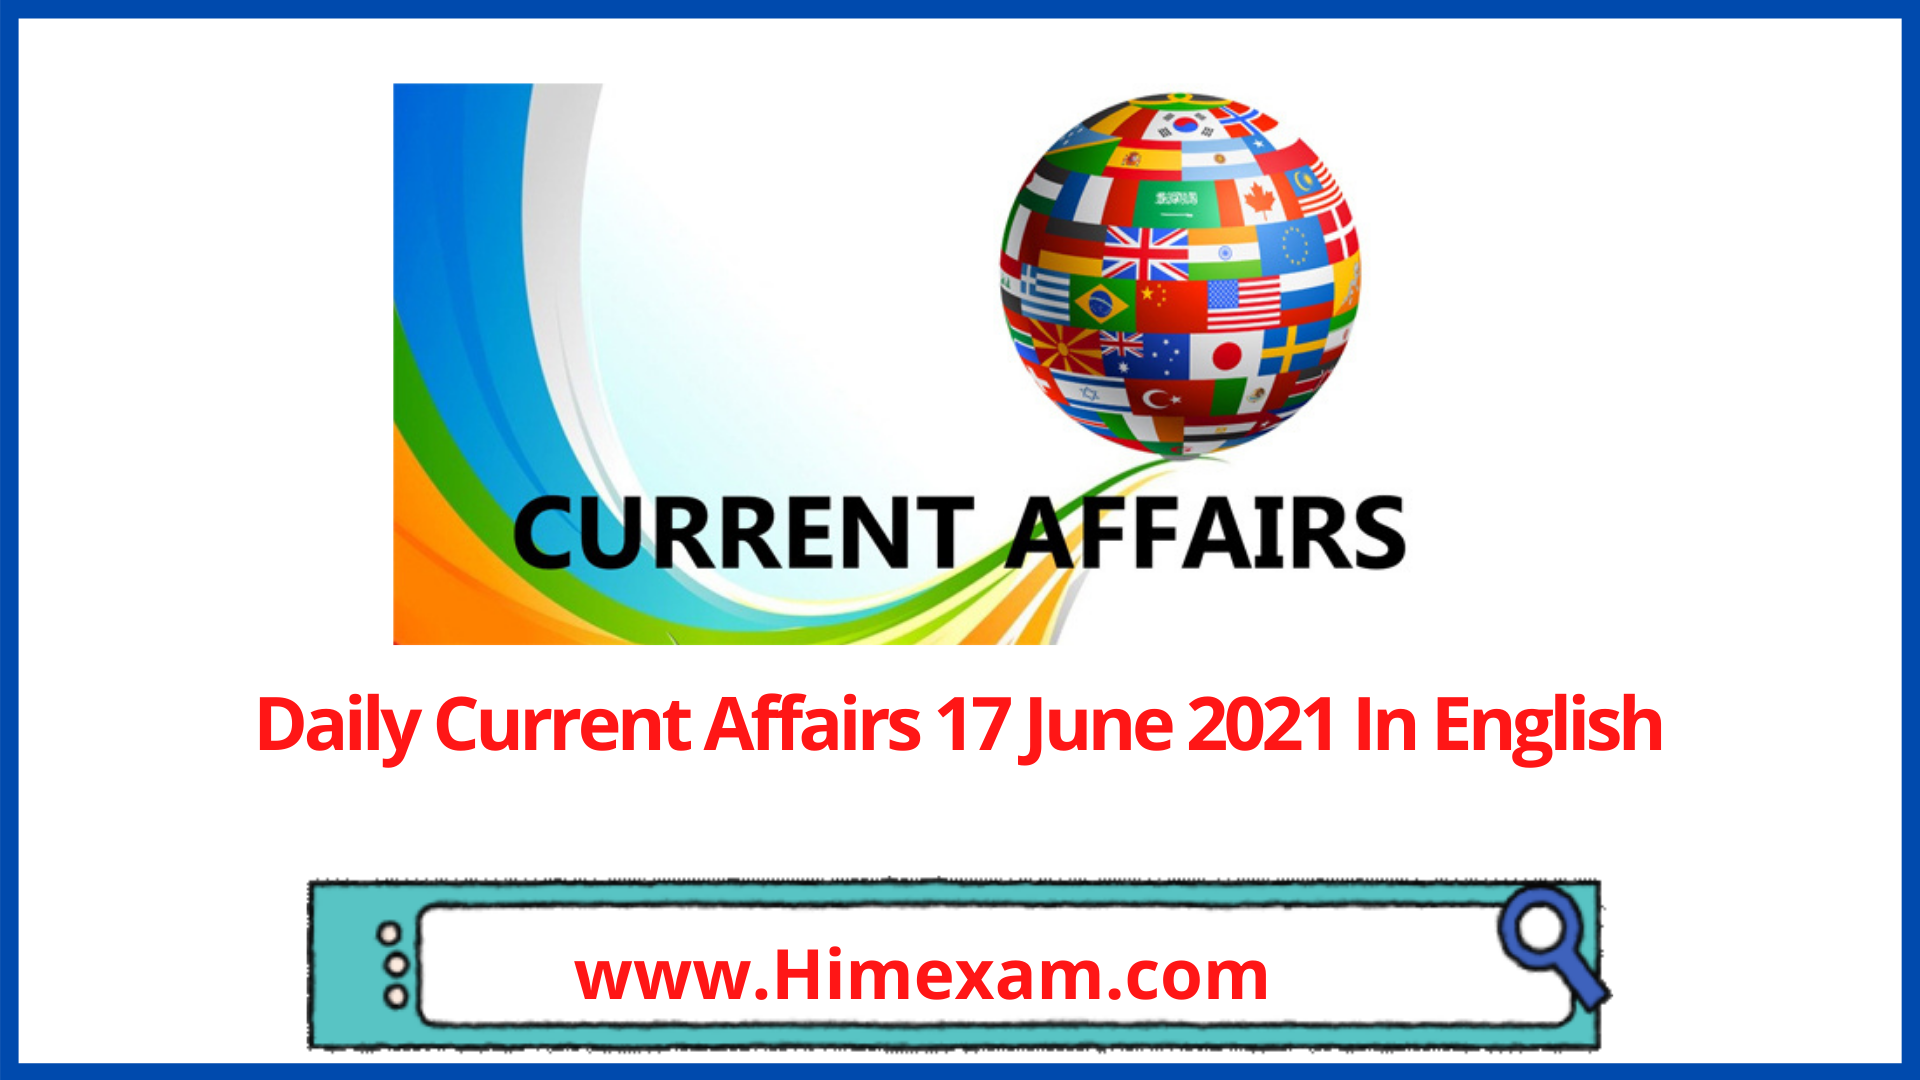 Daily Current Affairs 17 June 2021 In English